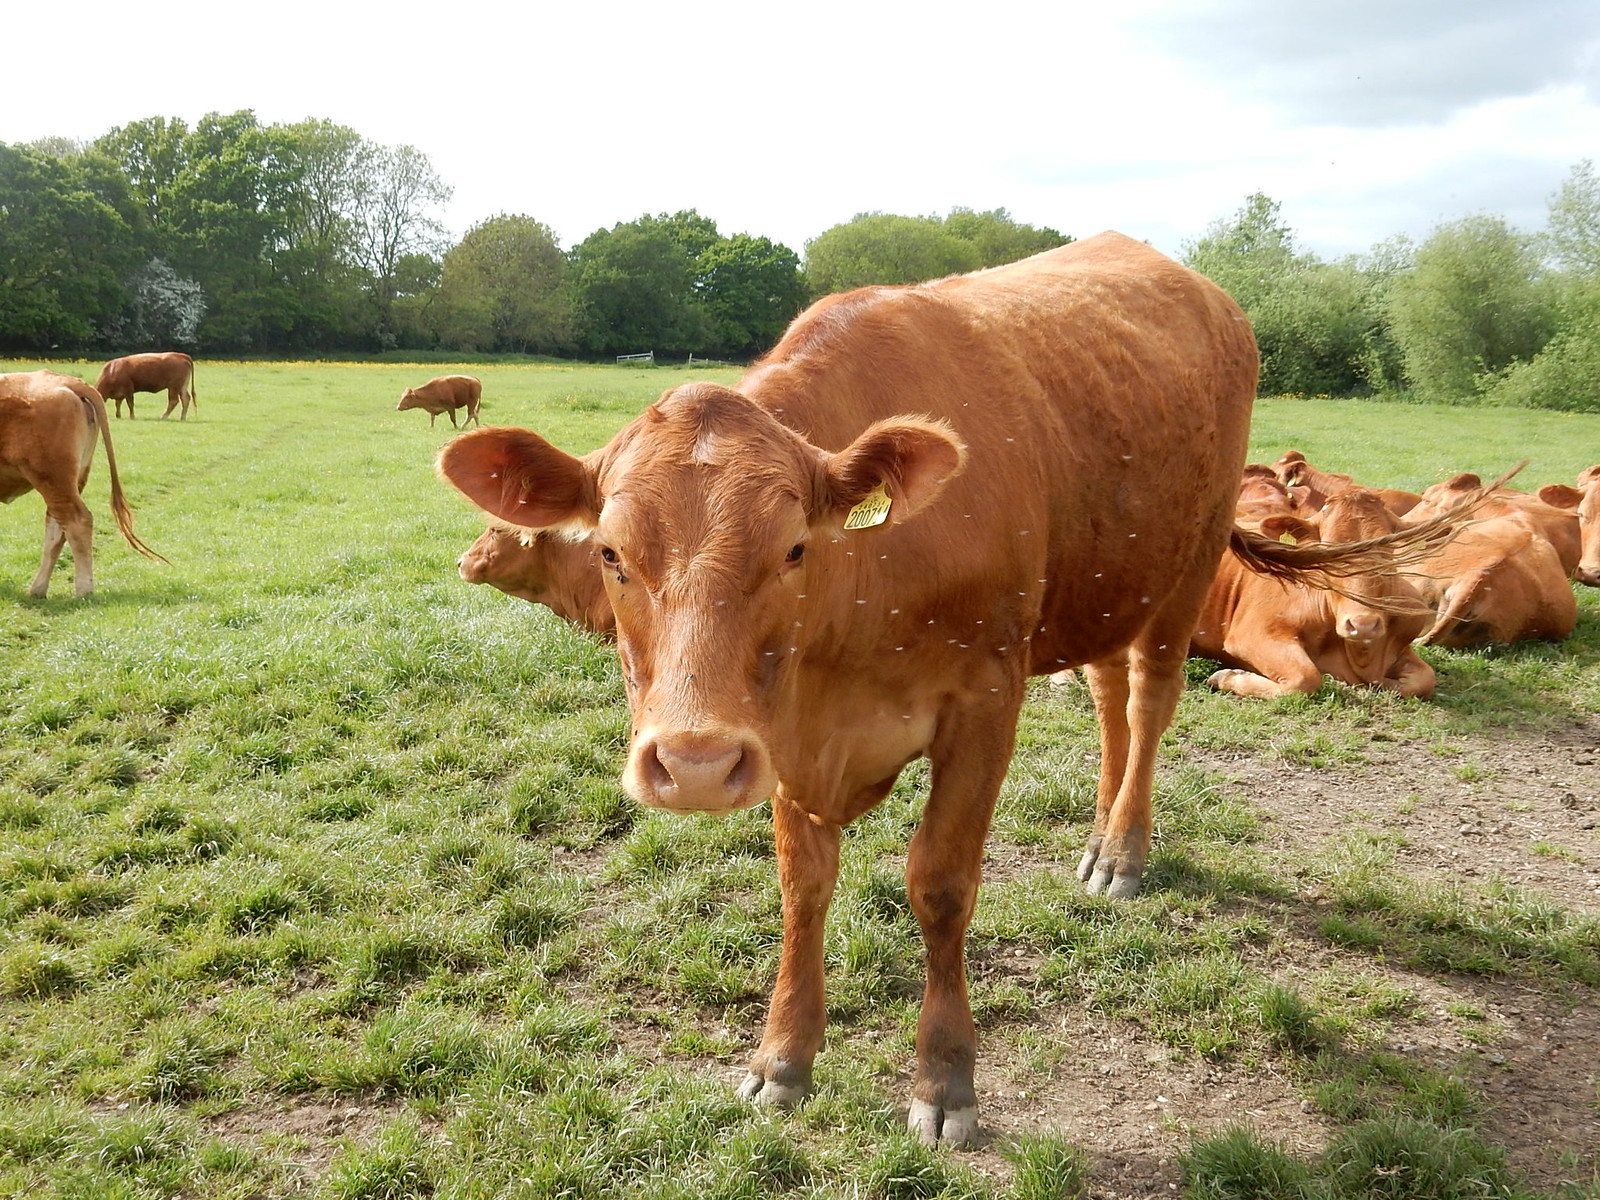 Cow with attendant flies Bures to Sudbury